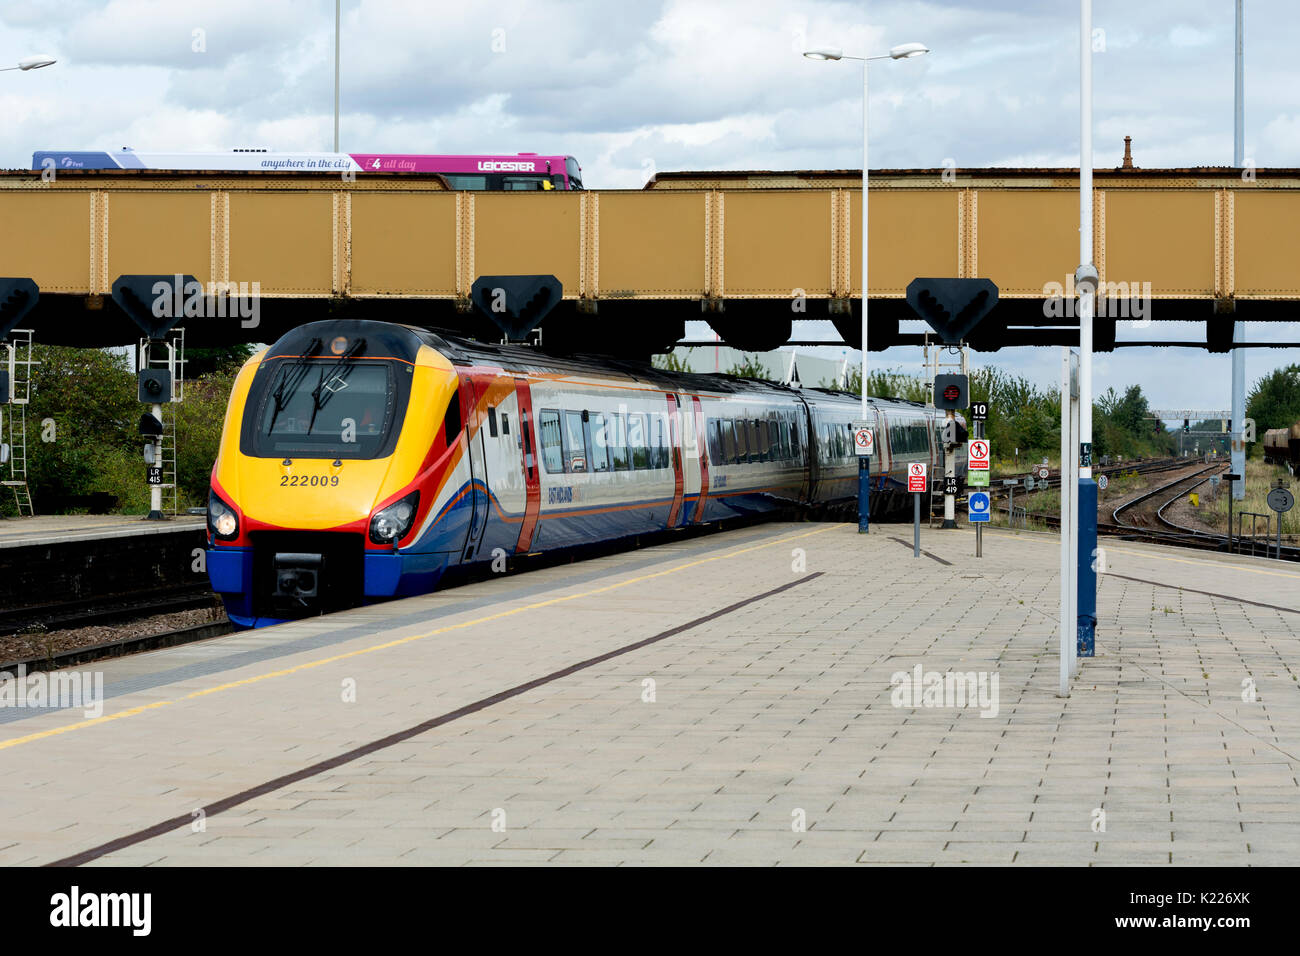 East Midlands Trains class 222 diesel arriving at Leicester station, Leicestershire, UK - Stock Image